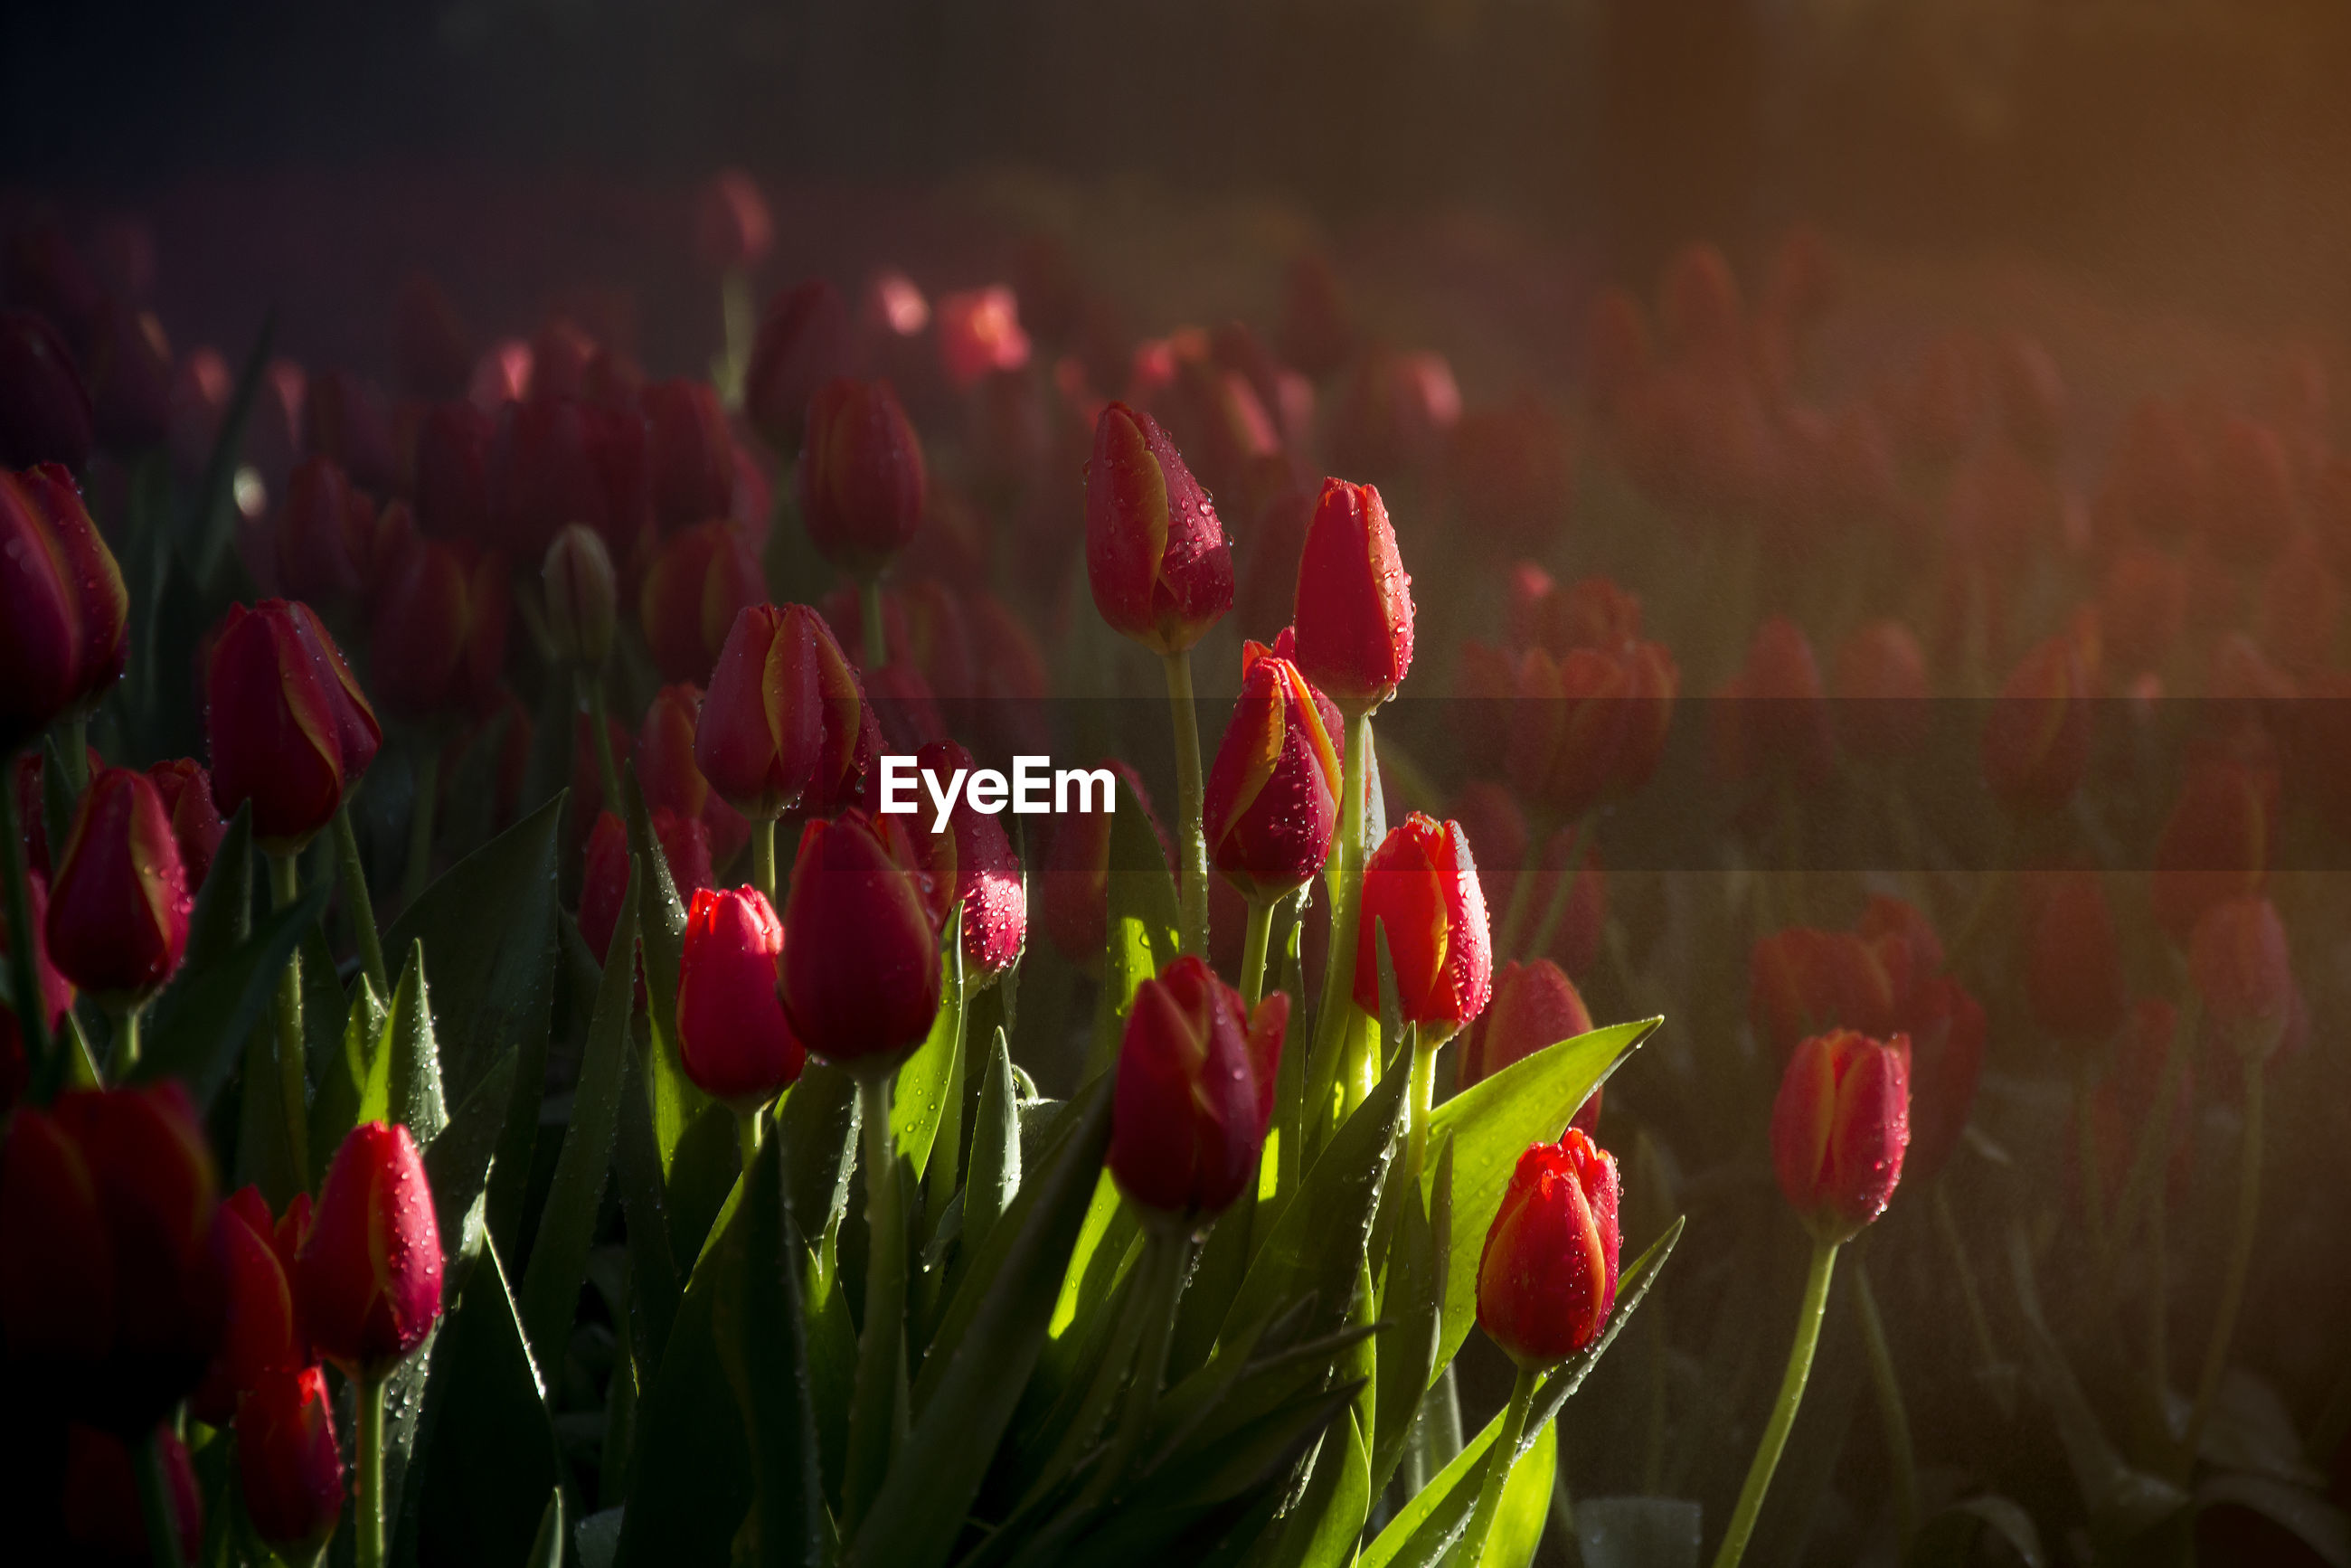 RED TULIPS BLOOMING OUTDOORS